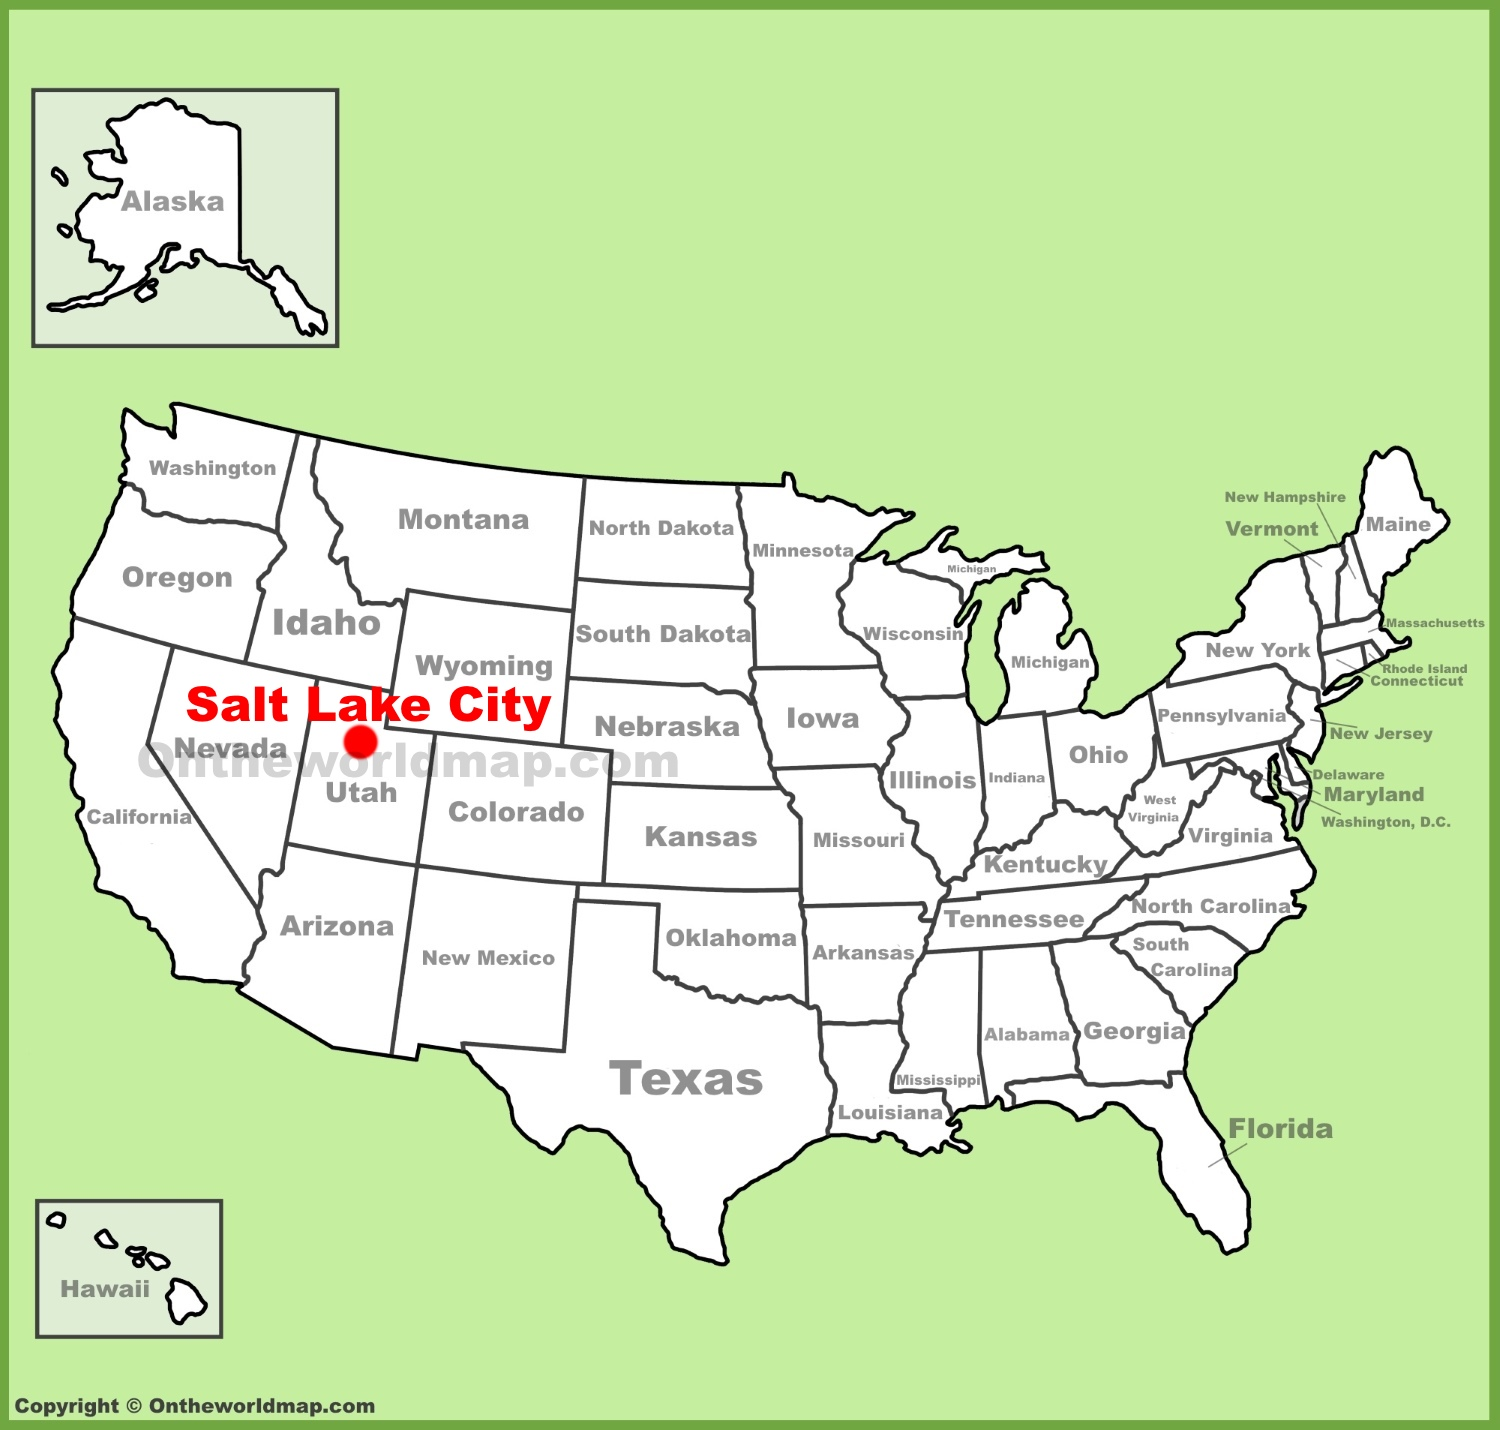 Salt Lake City On Us Map.Salt Lake City Location On The U S Map